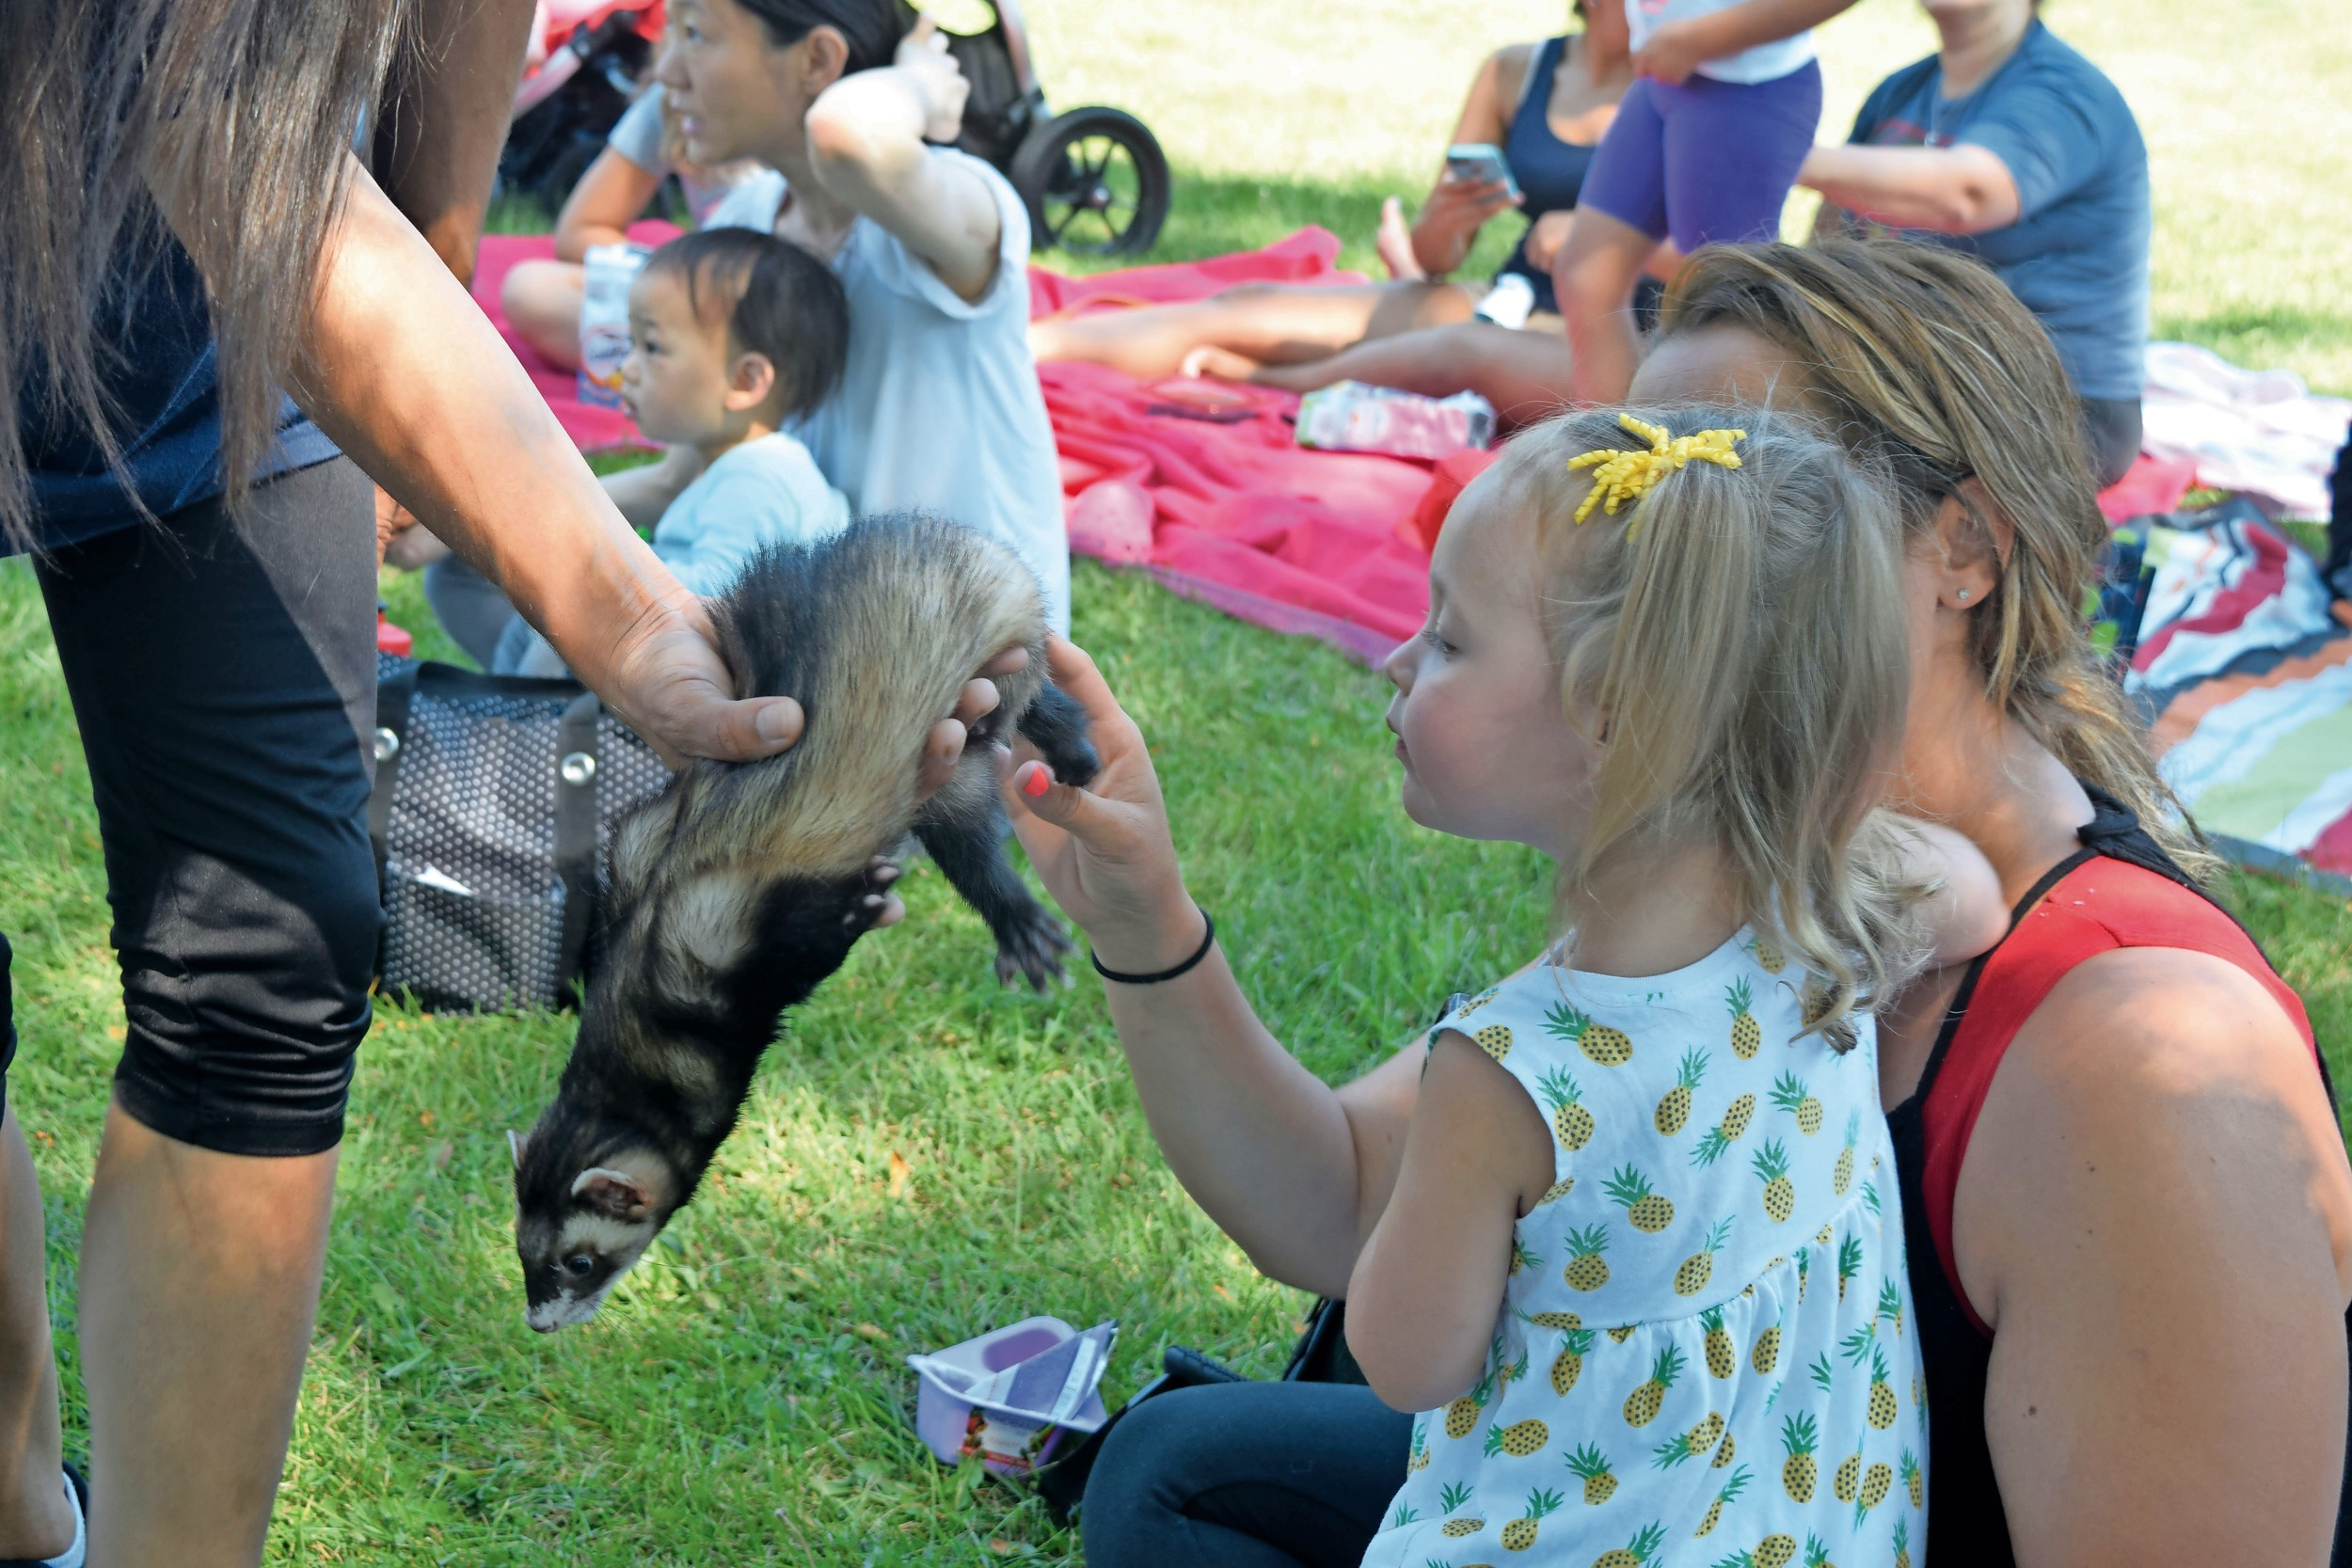 Stacy St. John and her daughter Kylie, 2, pet a ferret.